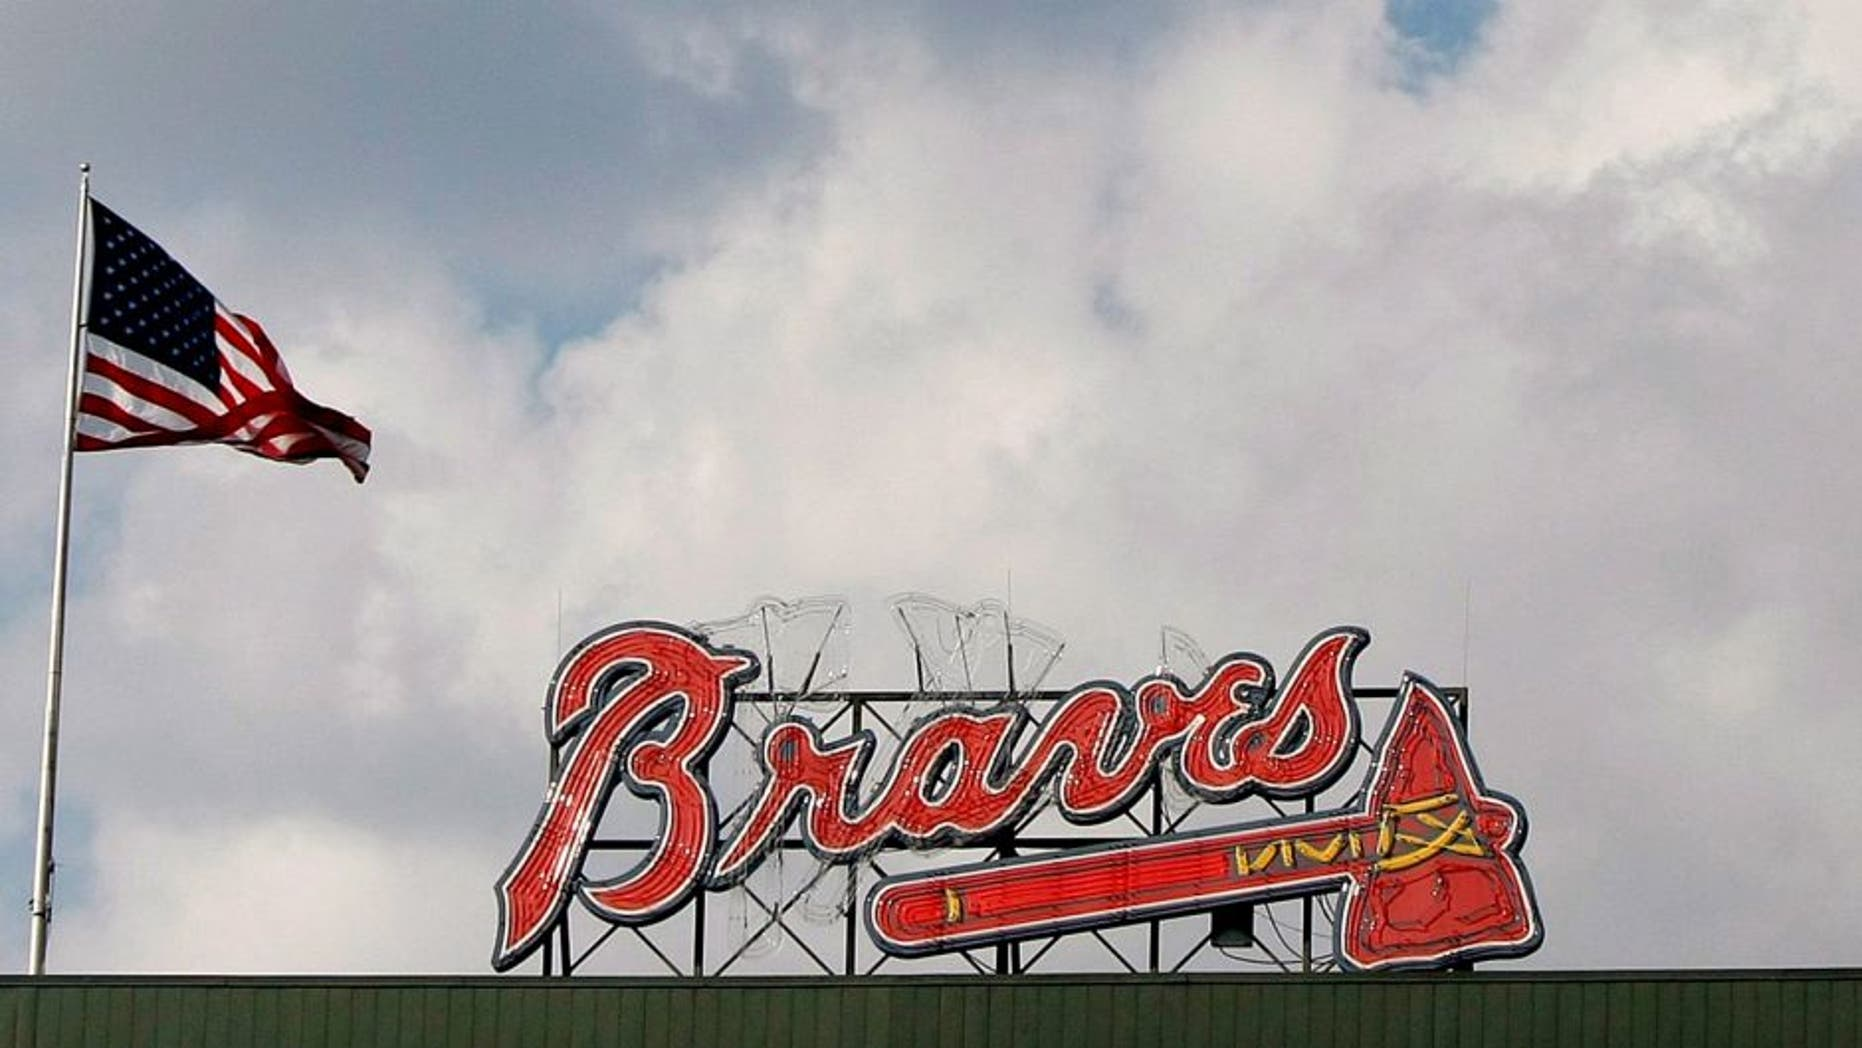 Aug 9, 2015; Atlanta, GA, USA; A general view of the American Flag flying in the sky over Turner Field during the fourth inning of a game between the Atlanta Braves and Miami Marlins. Mandatory Credit: Brett Davis-USA TODAY Sports